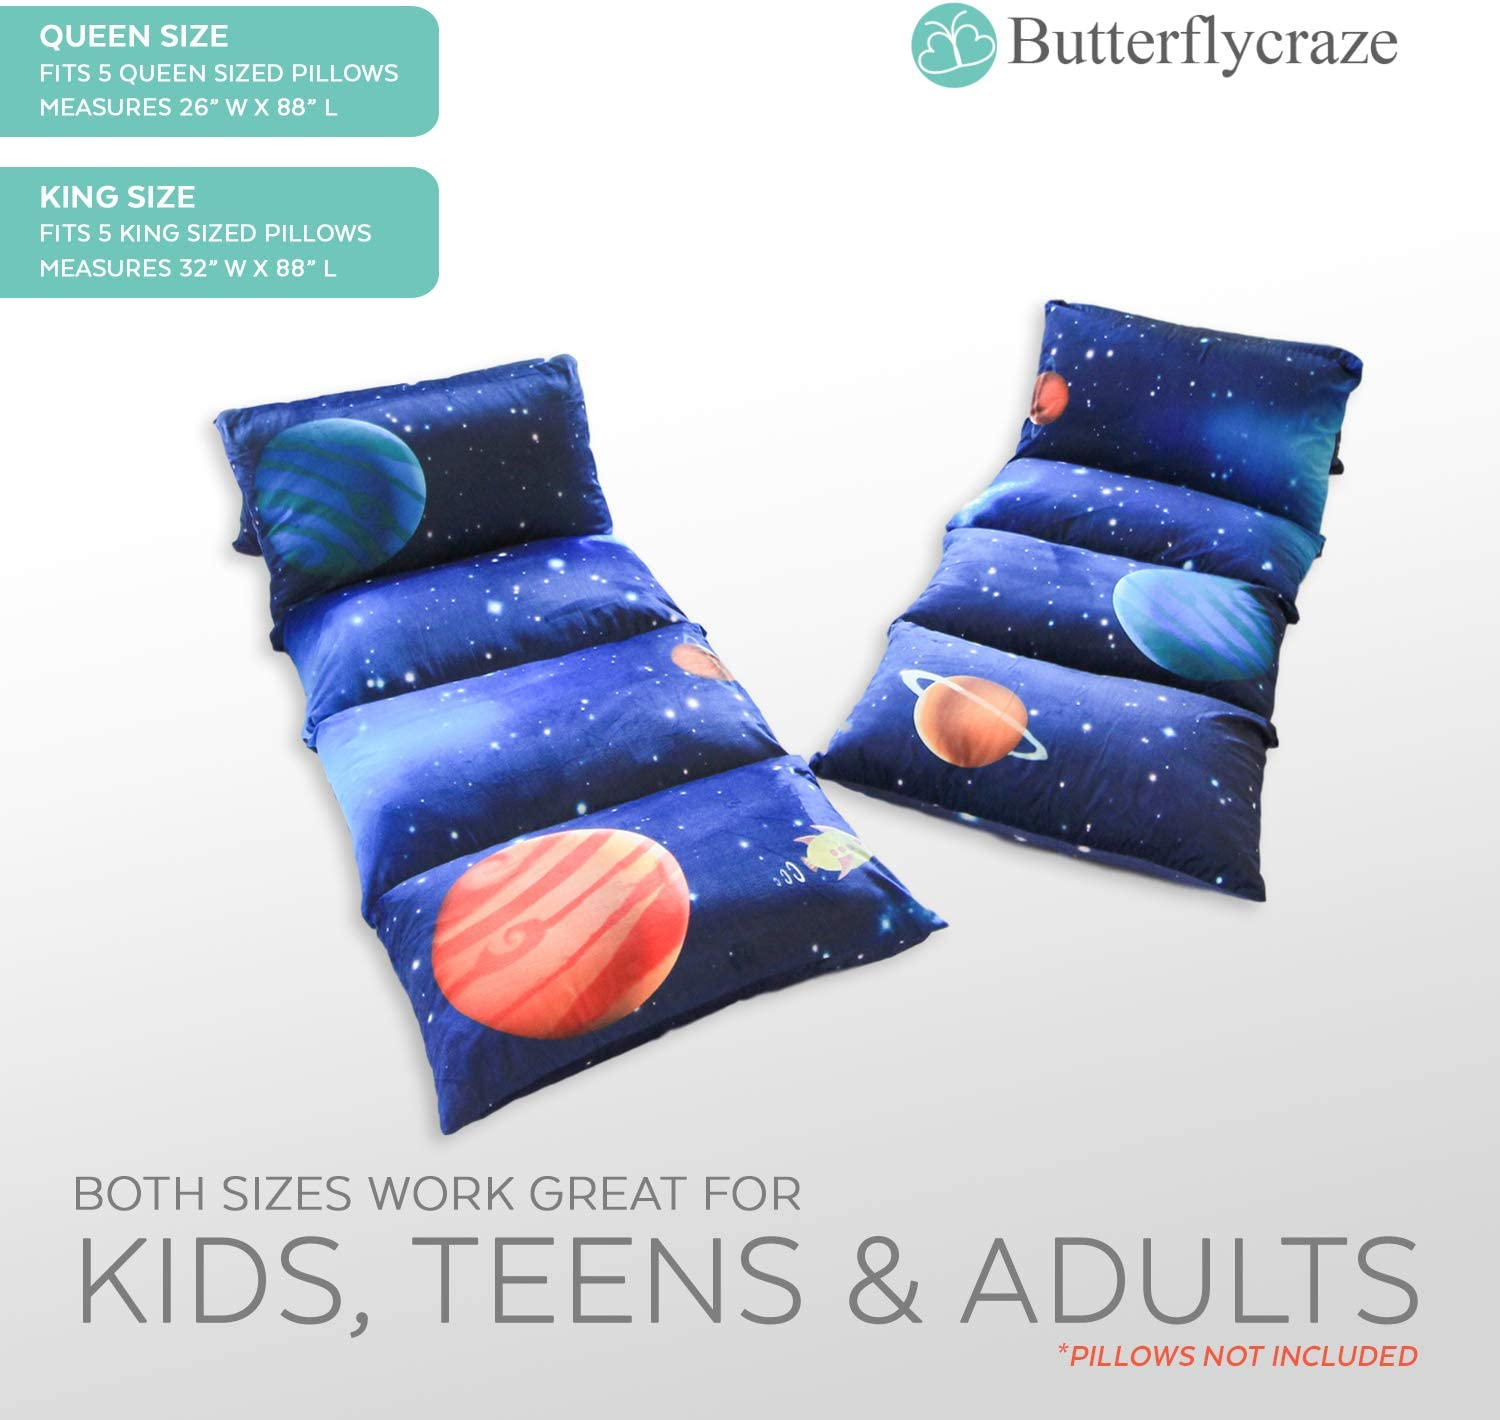 Luxurious Premium Plush Fabric Butterfly Craze Girls Floor Lounger Seats Cover and Pillow Cover Made of Super Soft Great for SLEEPOVERS Slumber Parties Perfect Reading and Watching TV Cushion